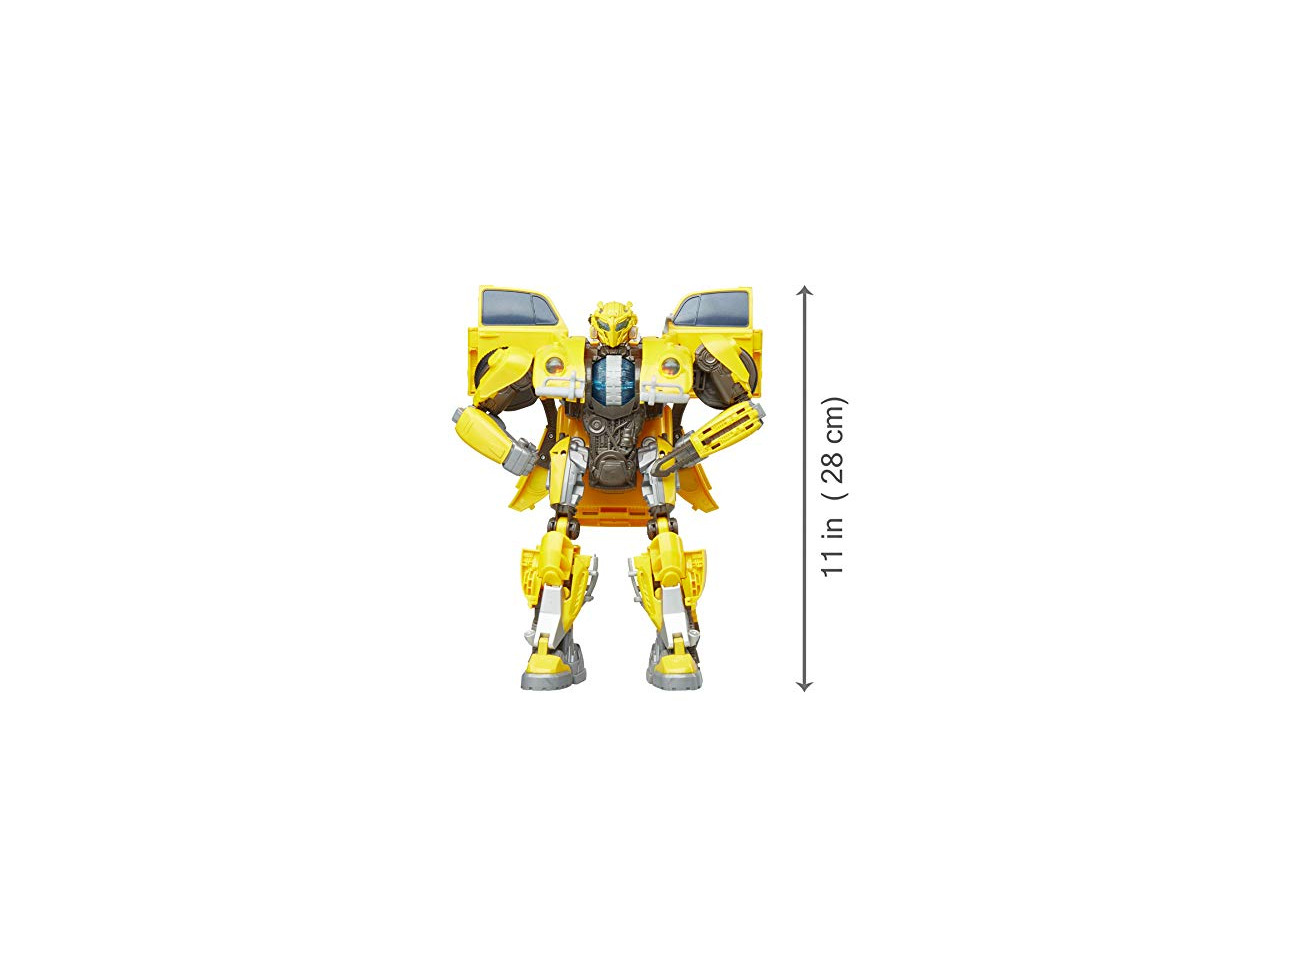 Transformers Bumblebee Action Figure Toy Robot W// Power Charge Lights Sounds